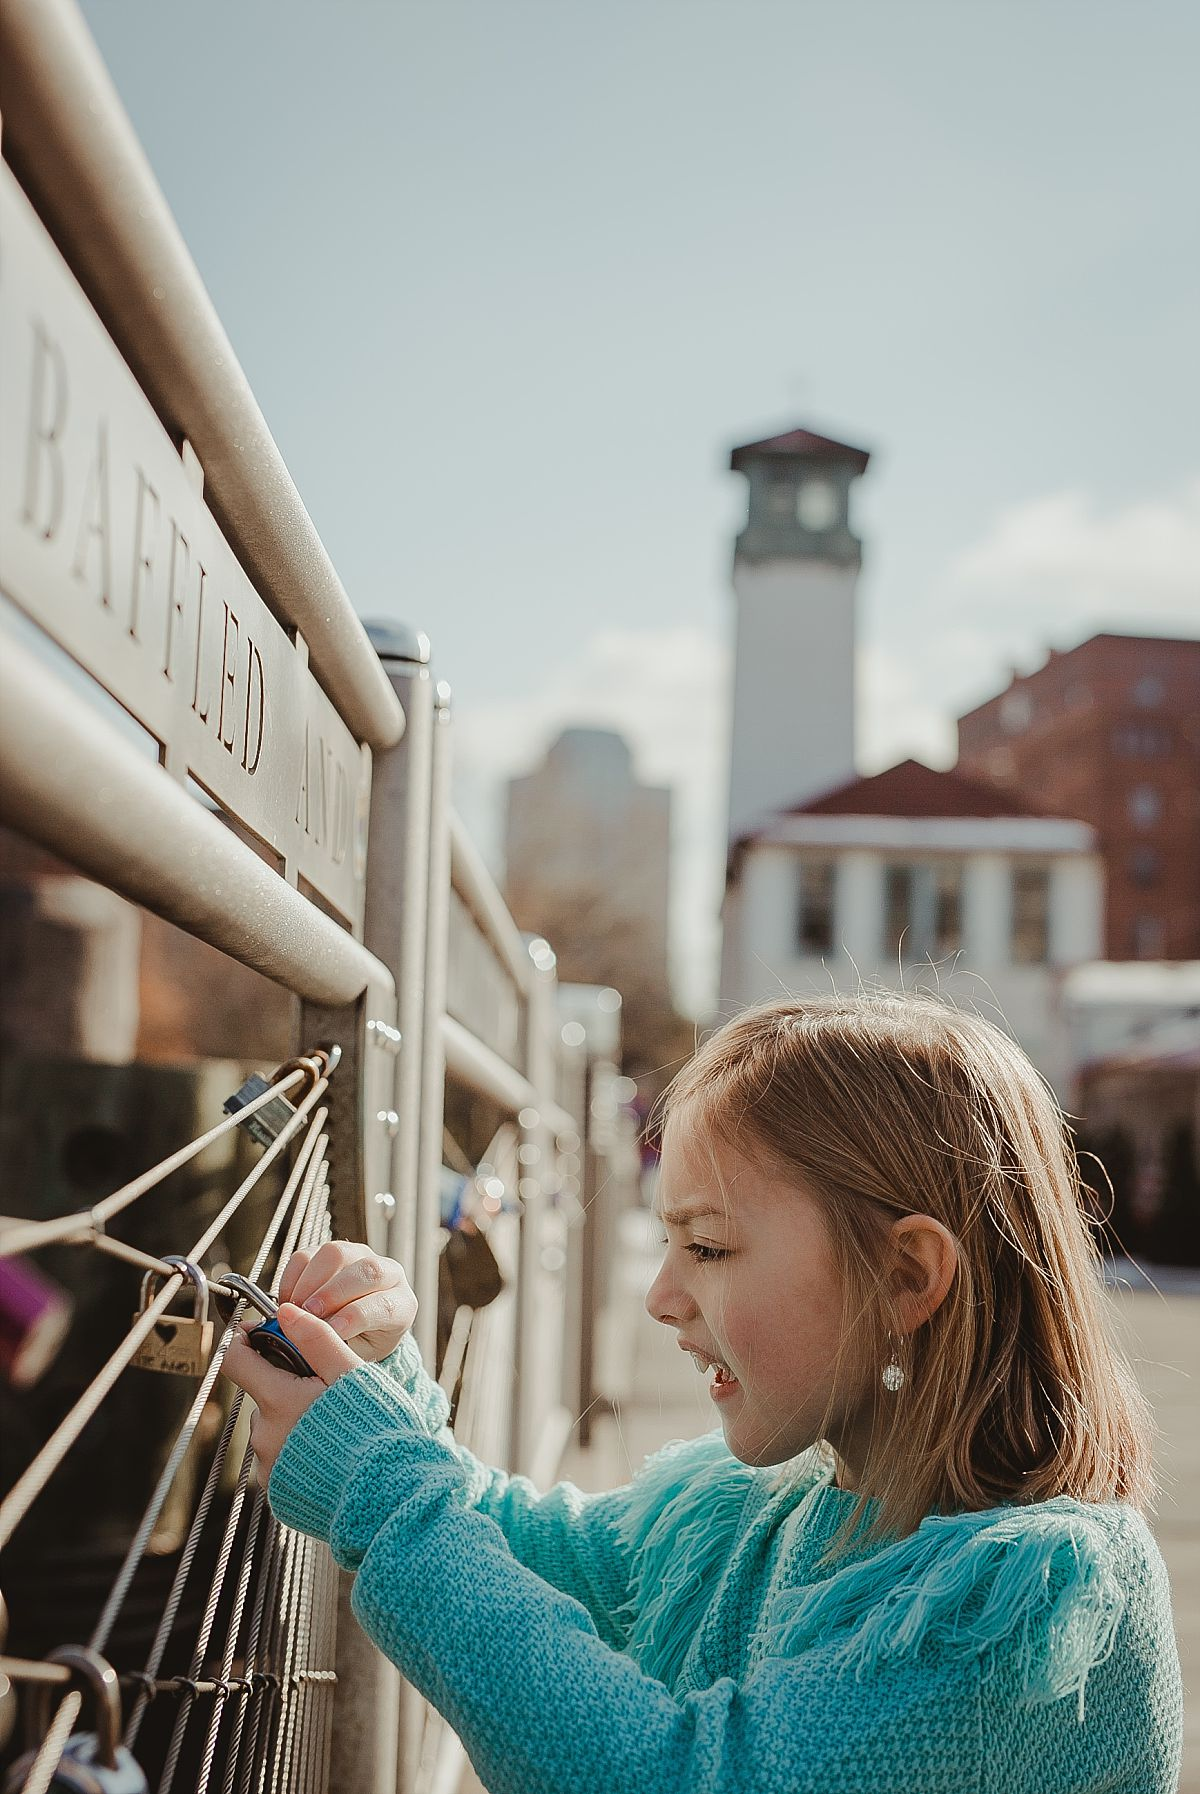 photo of girl as she looks at the lockets at pier in dumbo brooklyn. photo by nyc family photographer krystil mcdowall